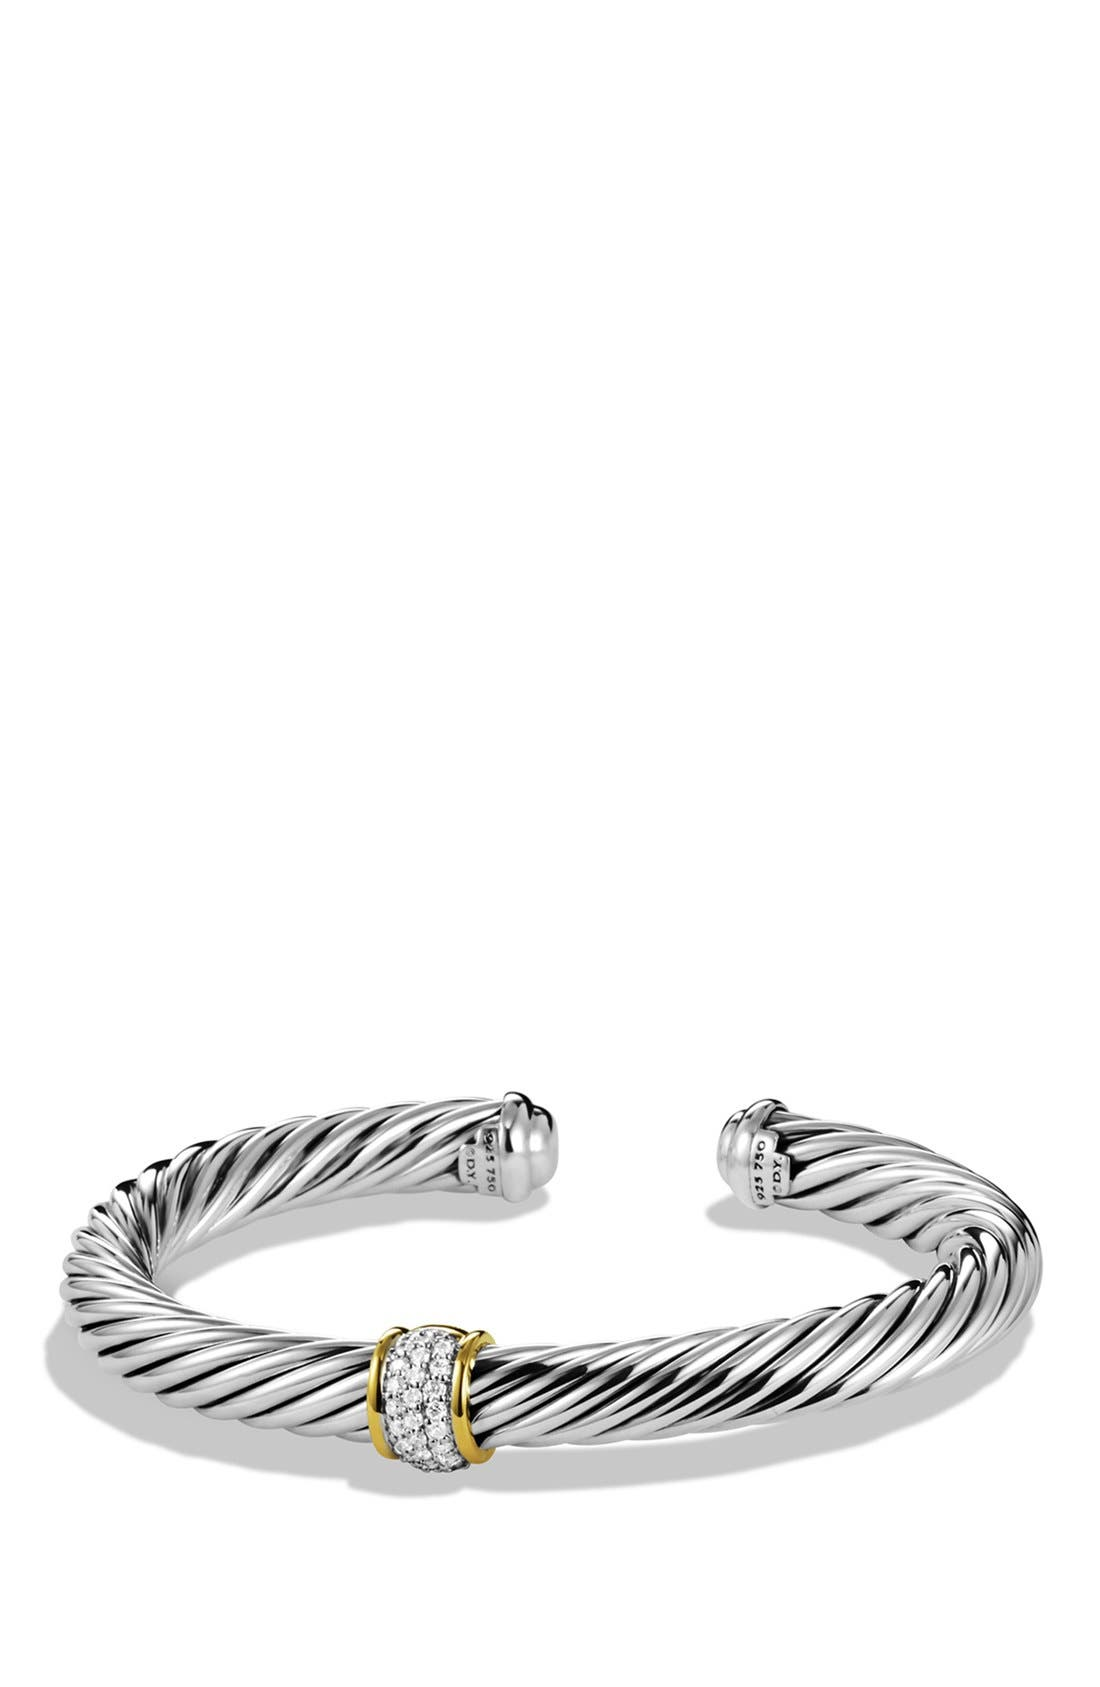 Cable Classics Bracelet with Diamonds & 18K Gold, 7mm,                         Main,                         color, DIAMOND